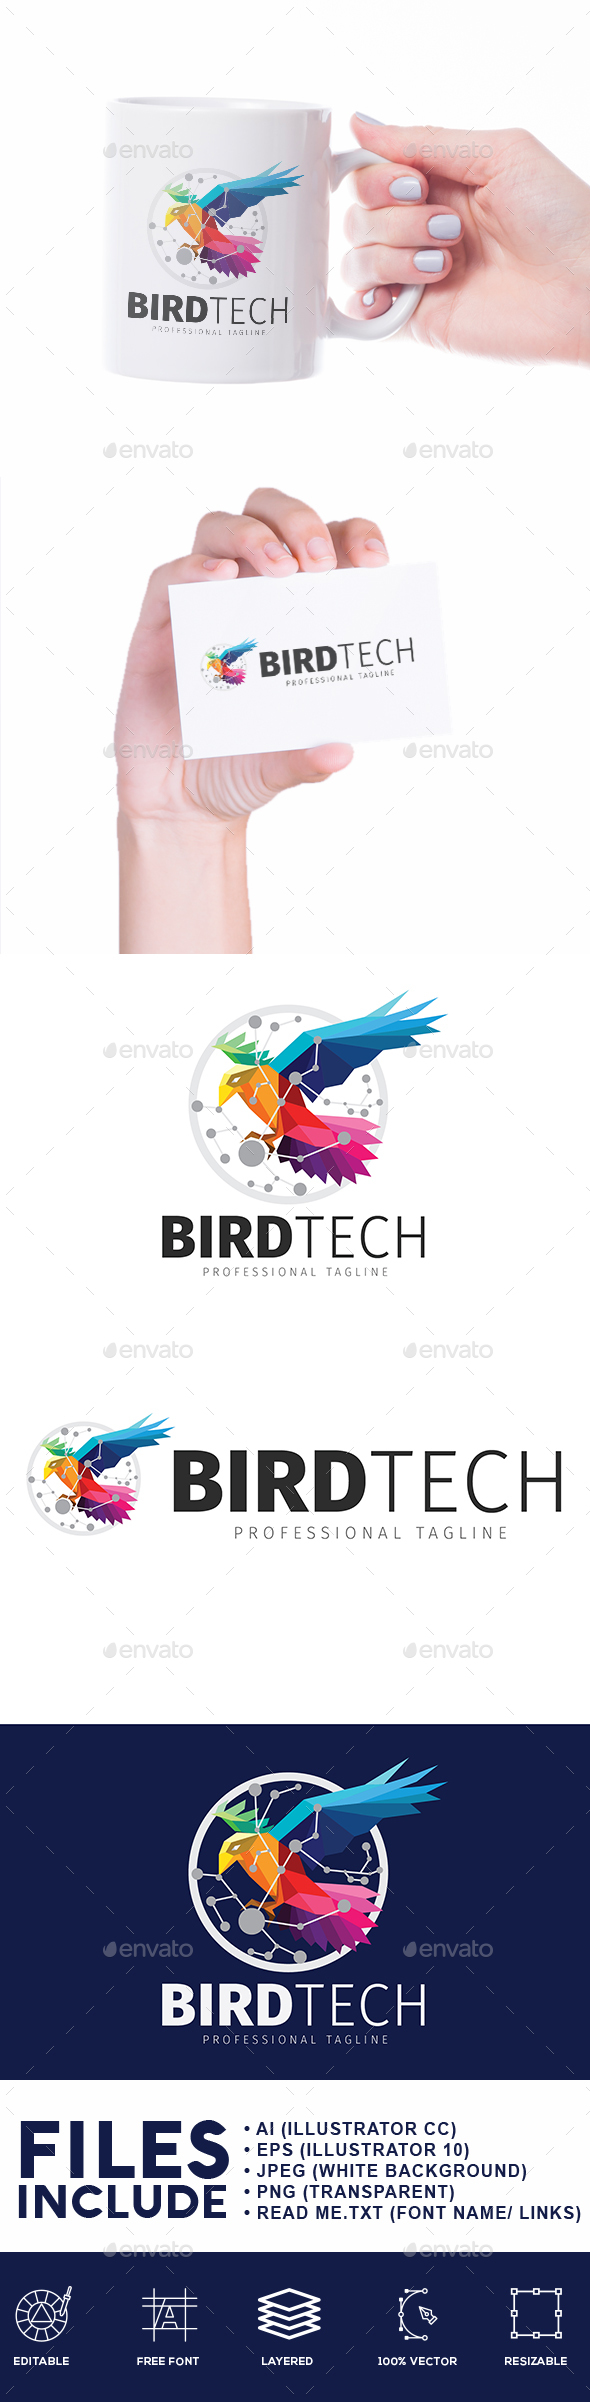 Bird Technology Logo - Animals Logo Templates